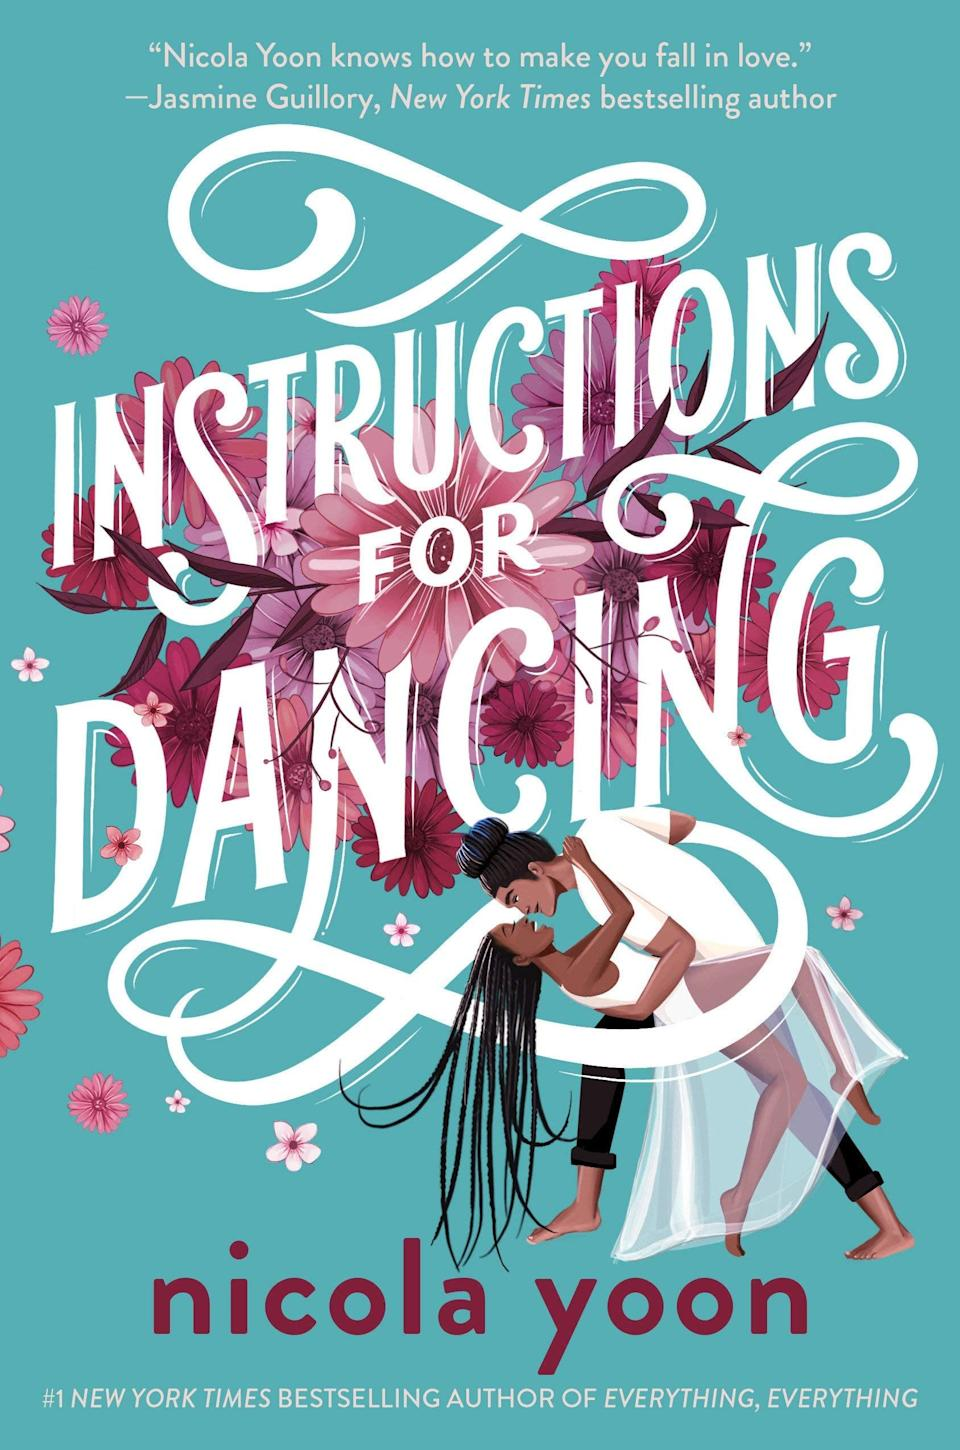 <p>Bestselling author Nicola Yoon is back with another stunning YA romance. <span><strong>Instructions for Dancing</strong></span> follows Evie Thomas, who loses her faith in love when she discovers she can tell how people's relationships will end just by looking at them. Still, even though her faith in love has been rattled, she can't stop herself from falling for her dance partner, X, at the La Brea Dance Studio. </p> <p><em>Out June 1</em></p>